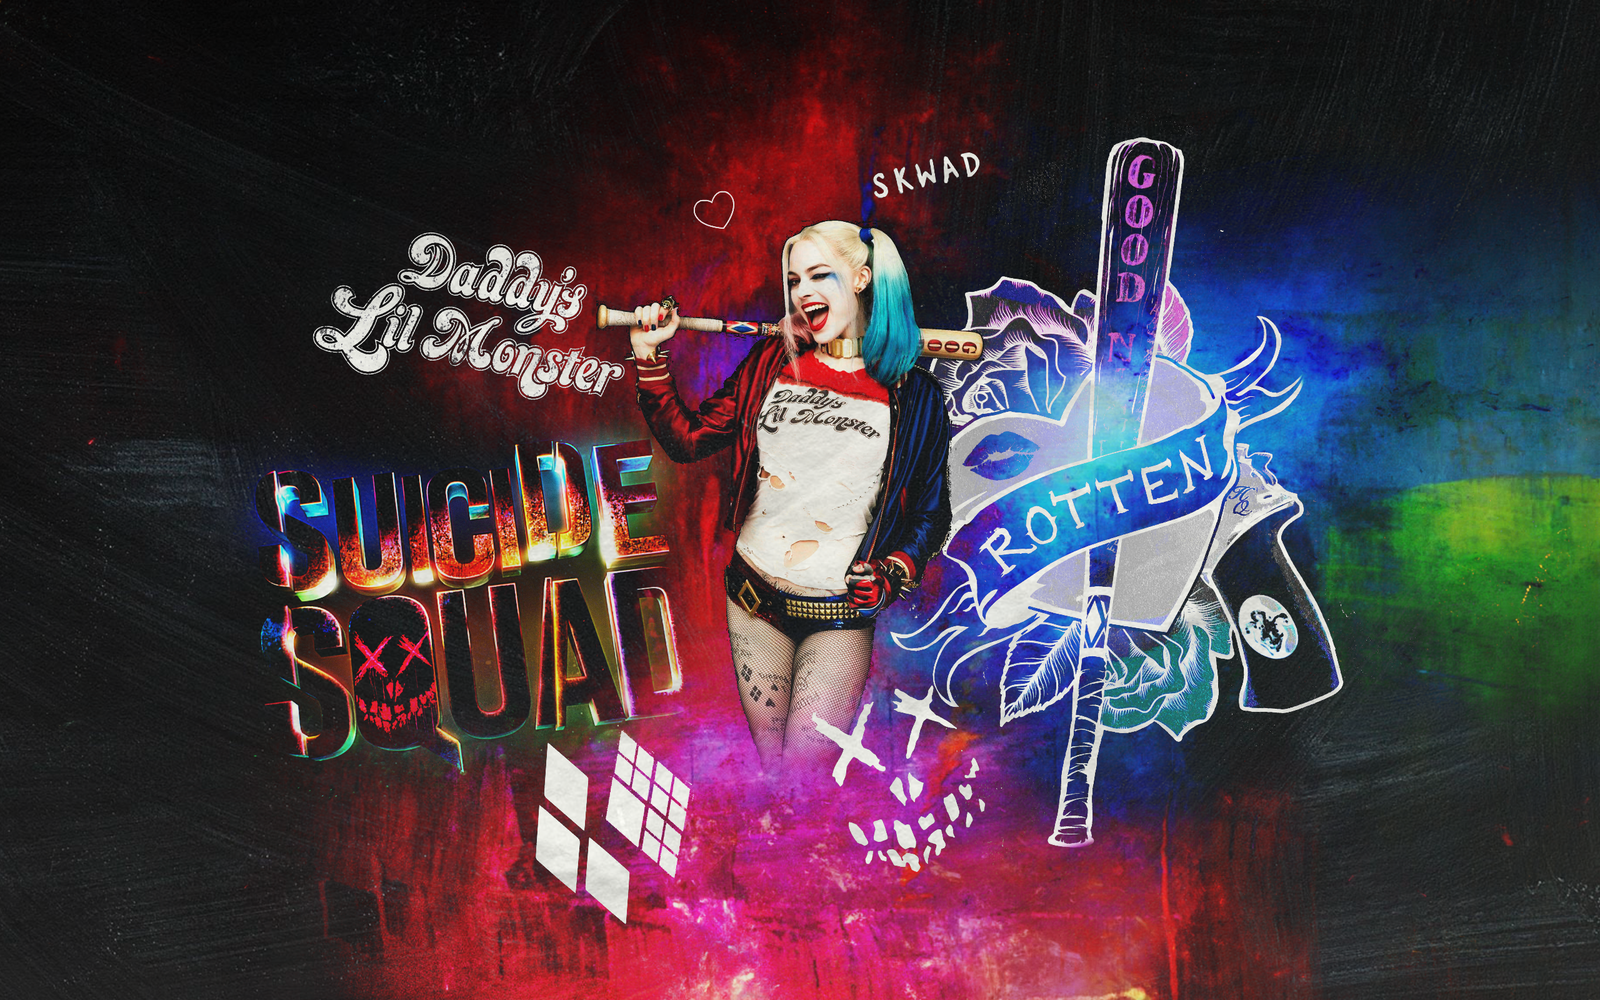 Harley Quinn Suicide Squad Wallpaper By Panchecco On